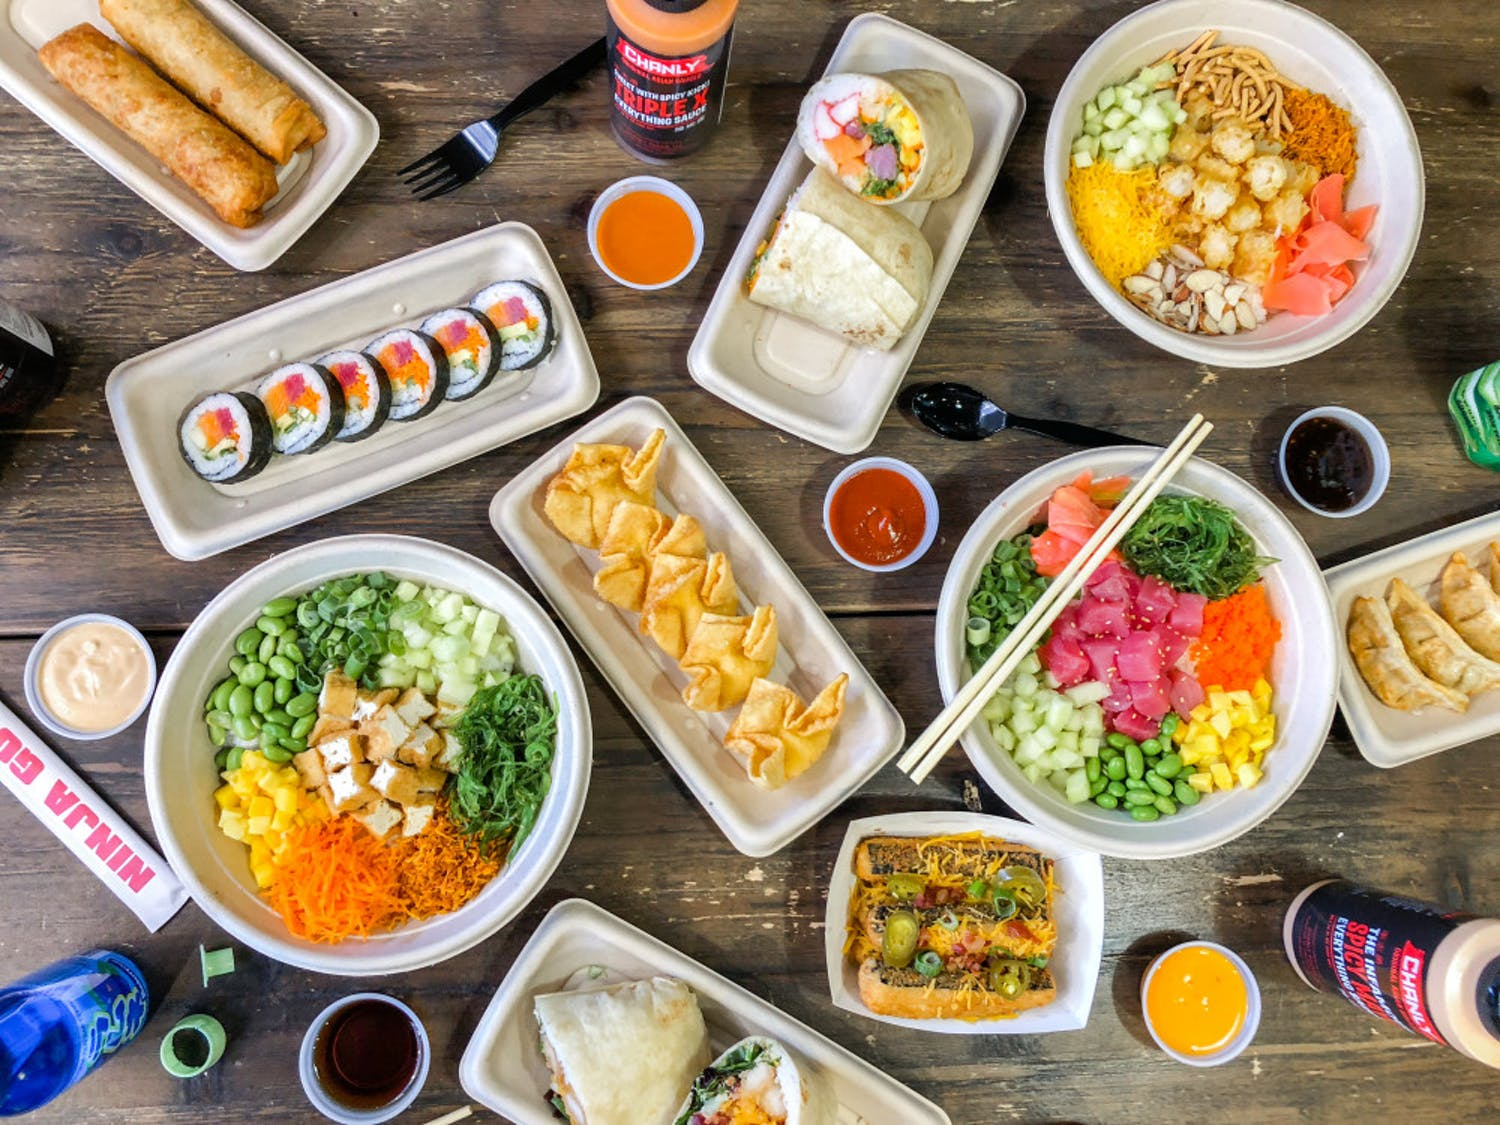 The new quick-serve sushi concept location will open at 3524 SW Archer Rd., with a two-day grand opening on Oct. 2 and 3.